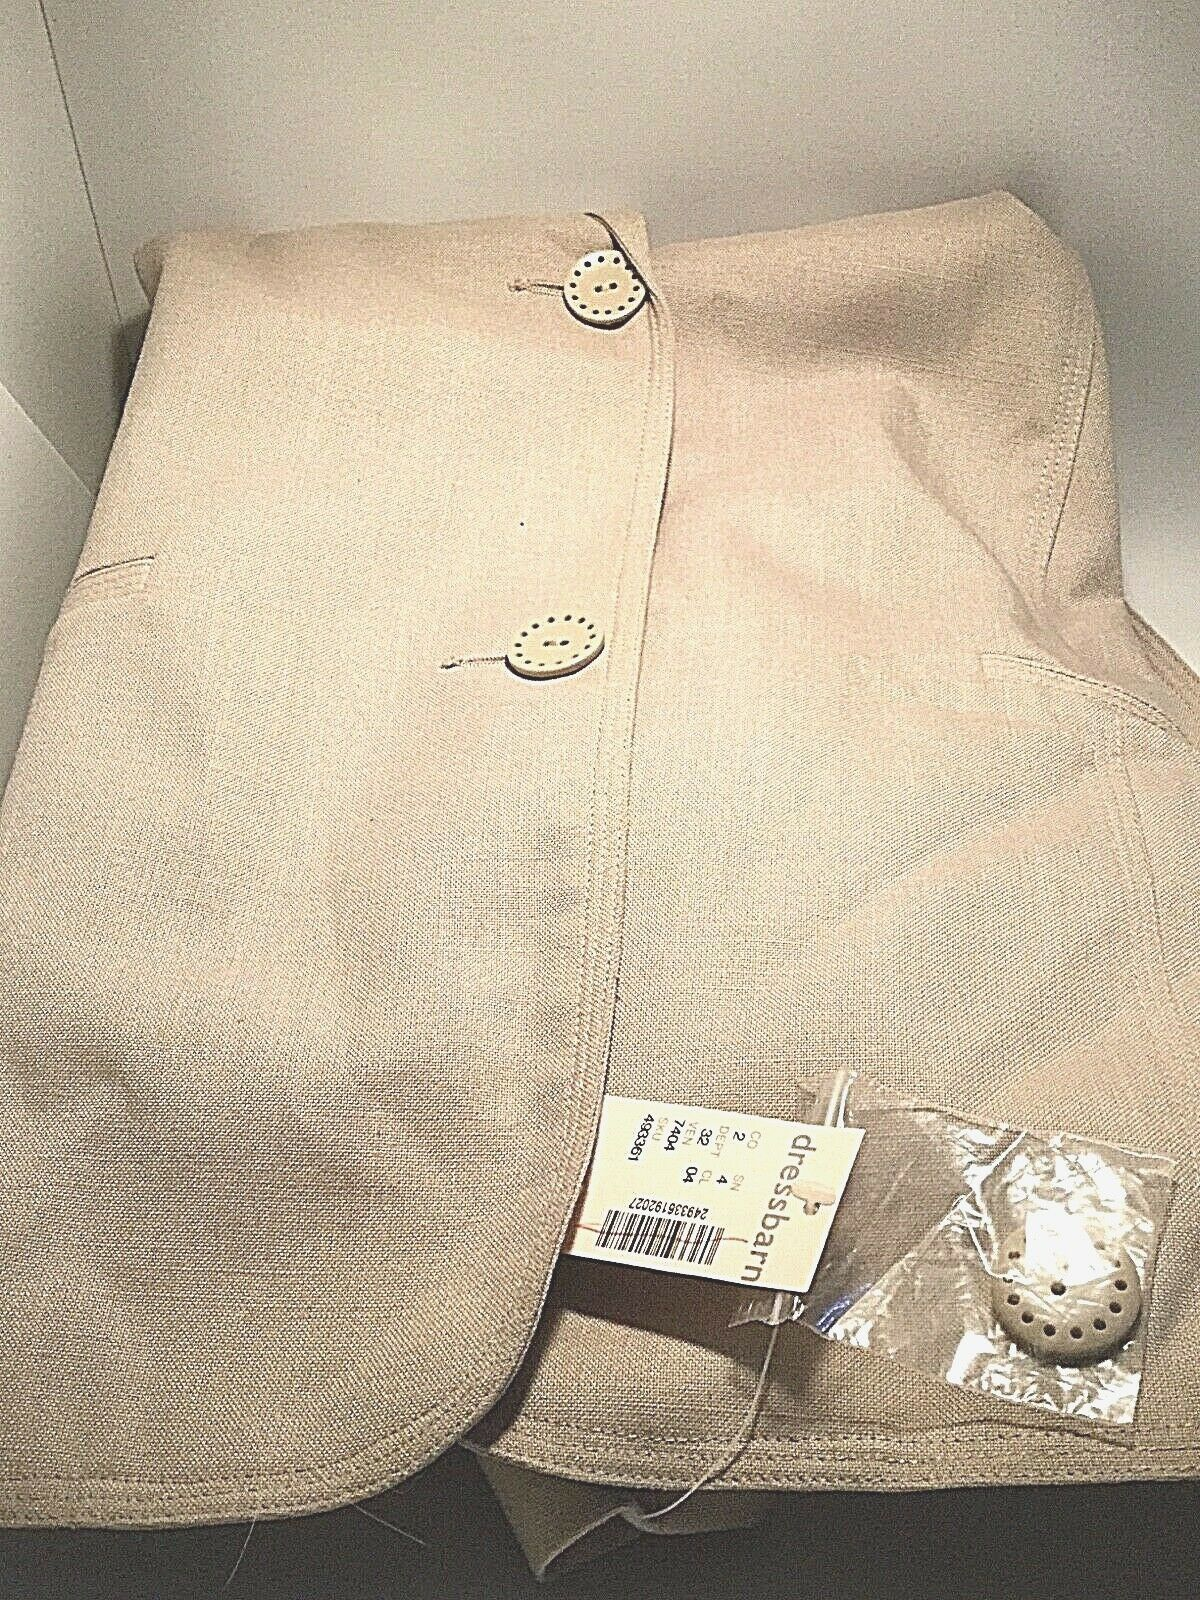 Dress Barn Women s s s size 24 lined  Blazer Beige colord New with Tags b2bf3d